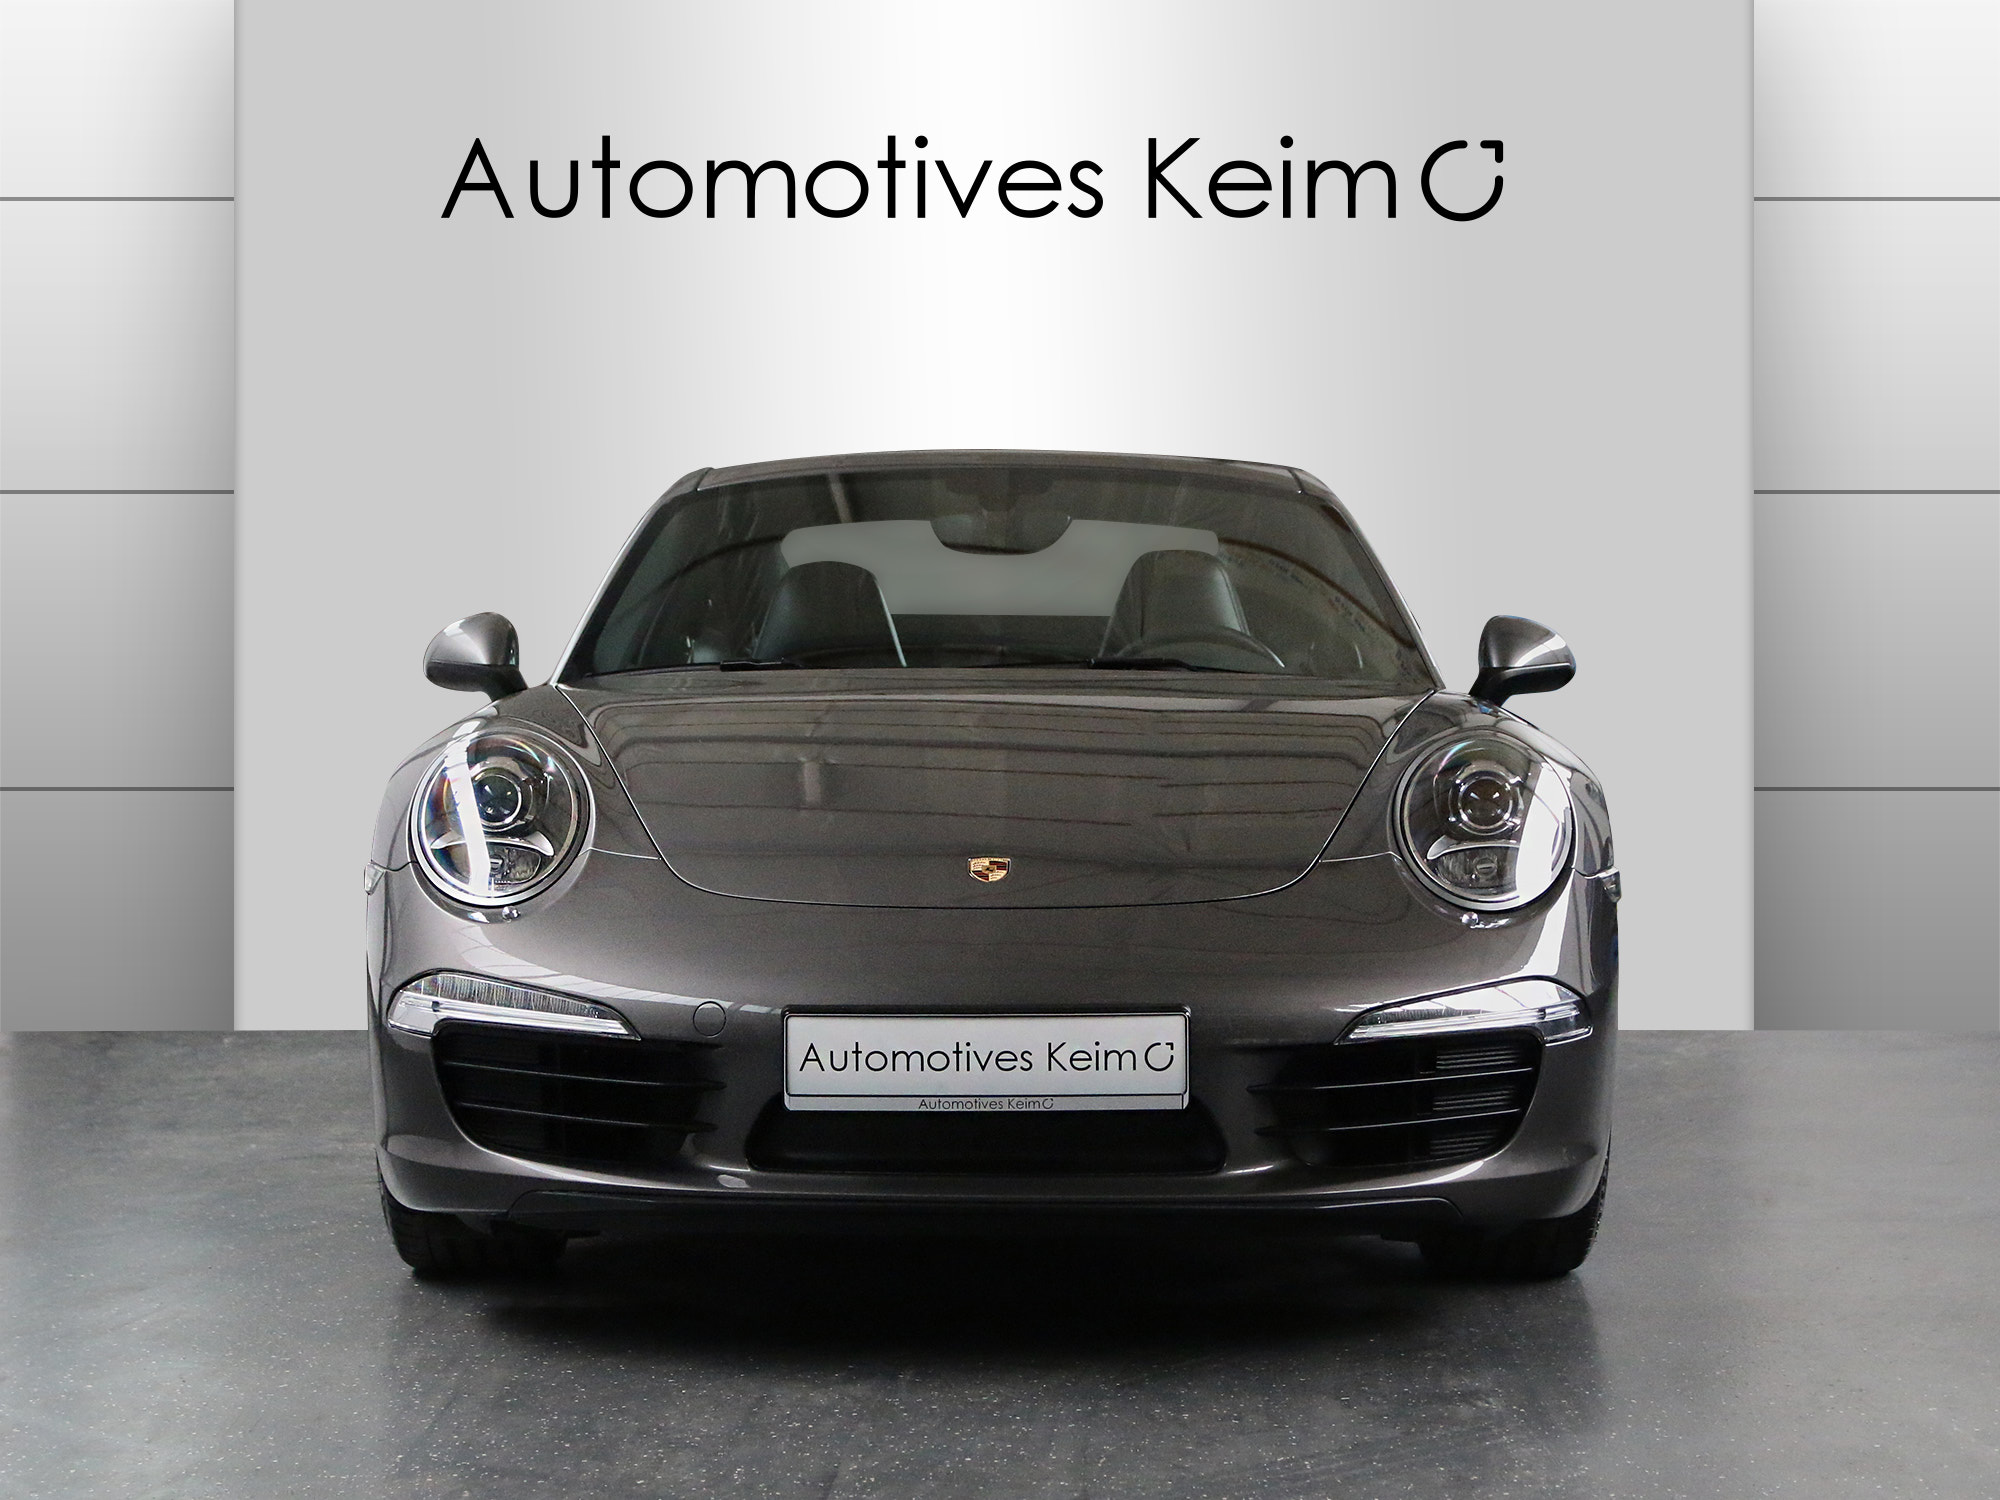 PORSCHE 911 991 COUPE Automotives Keim GmbH 63500 Seligenstadt Www.automotives Keim.de Oliver Keim 000247